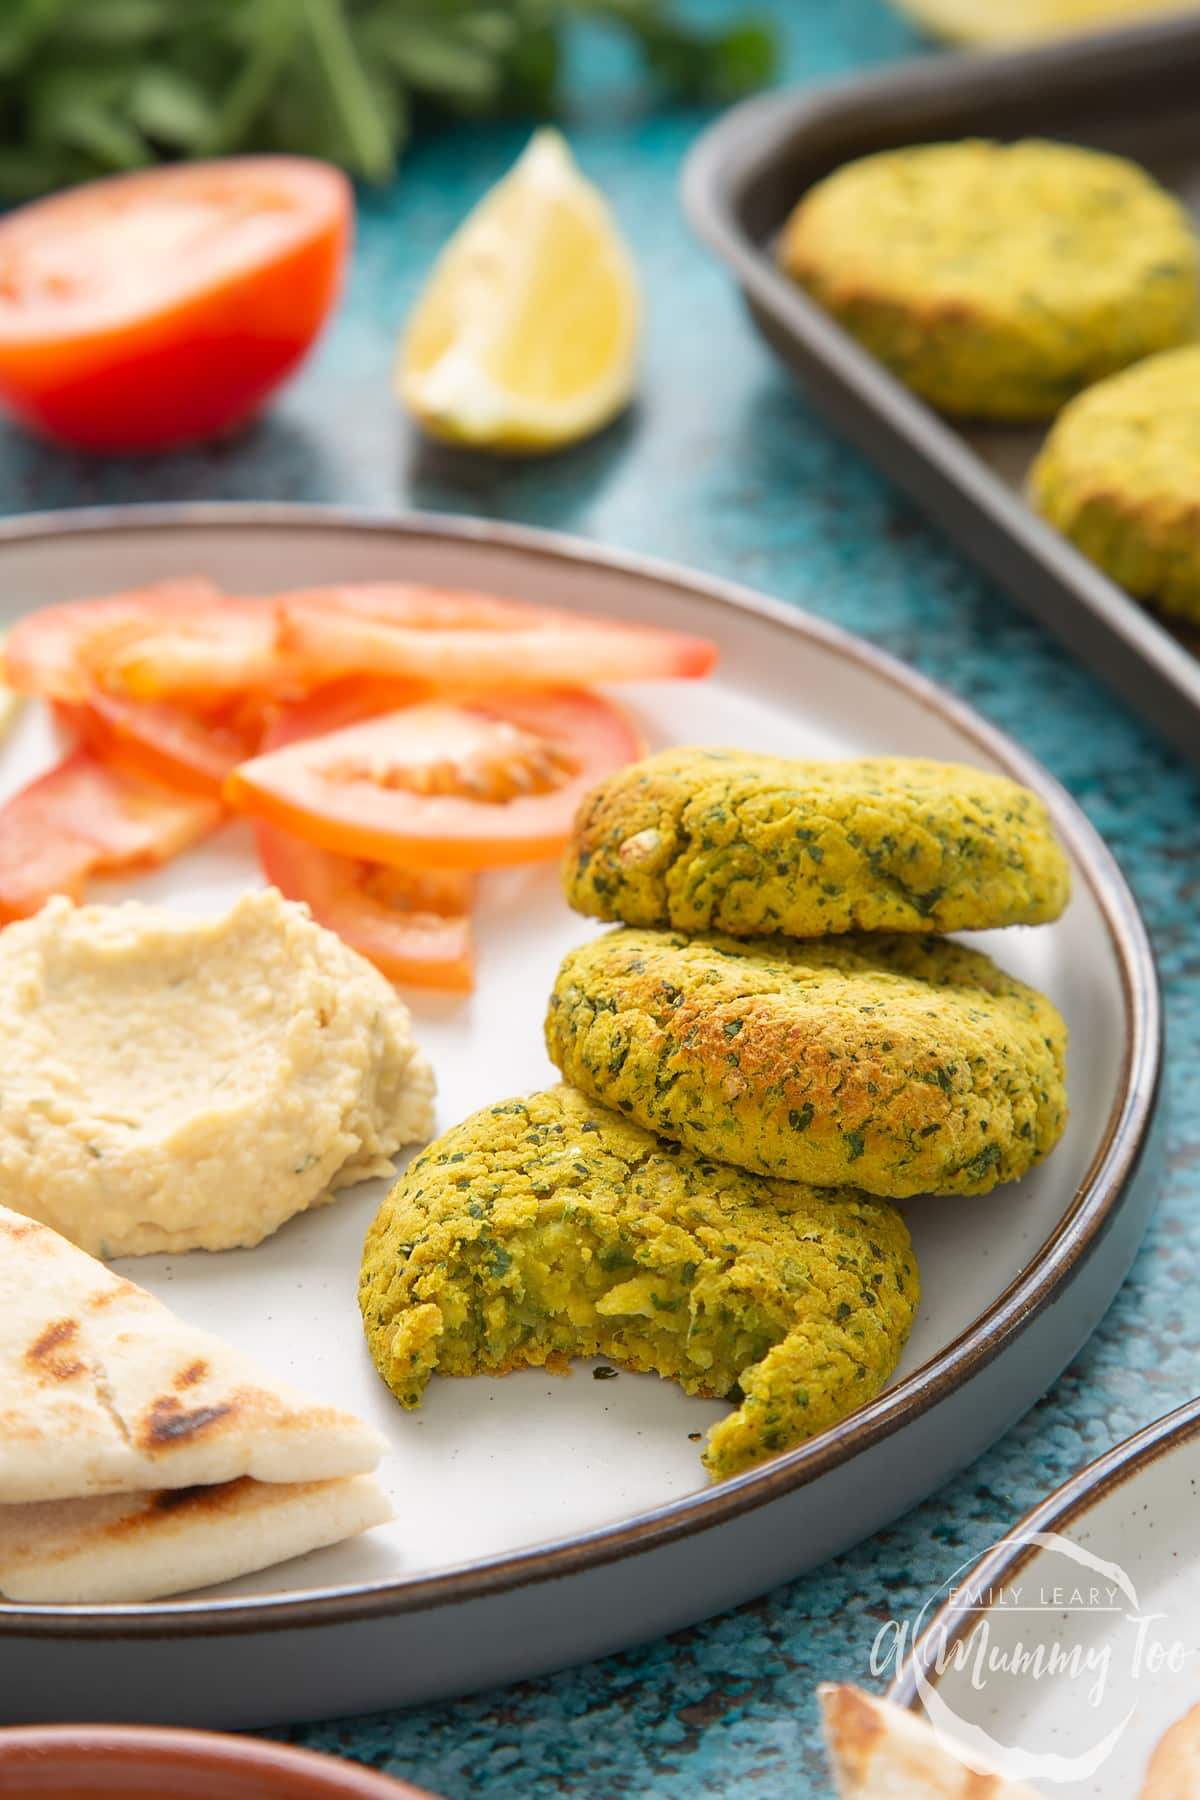 Gluten-free falafel arranged on a plate with tomatoes, cucumber, hummus and  griddled flatbread. One of the falafel has a bite out of it.